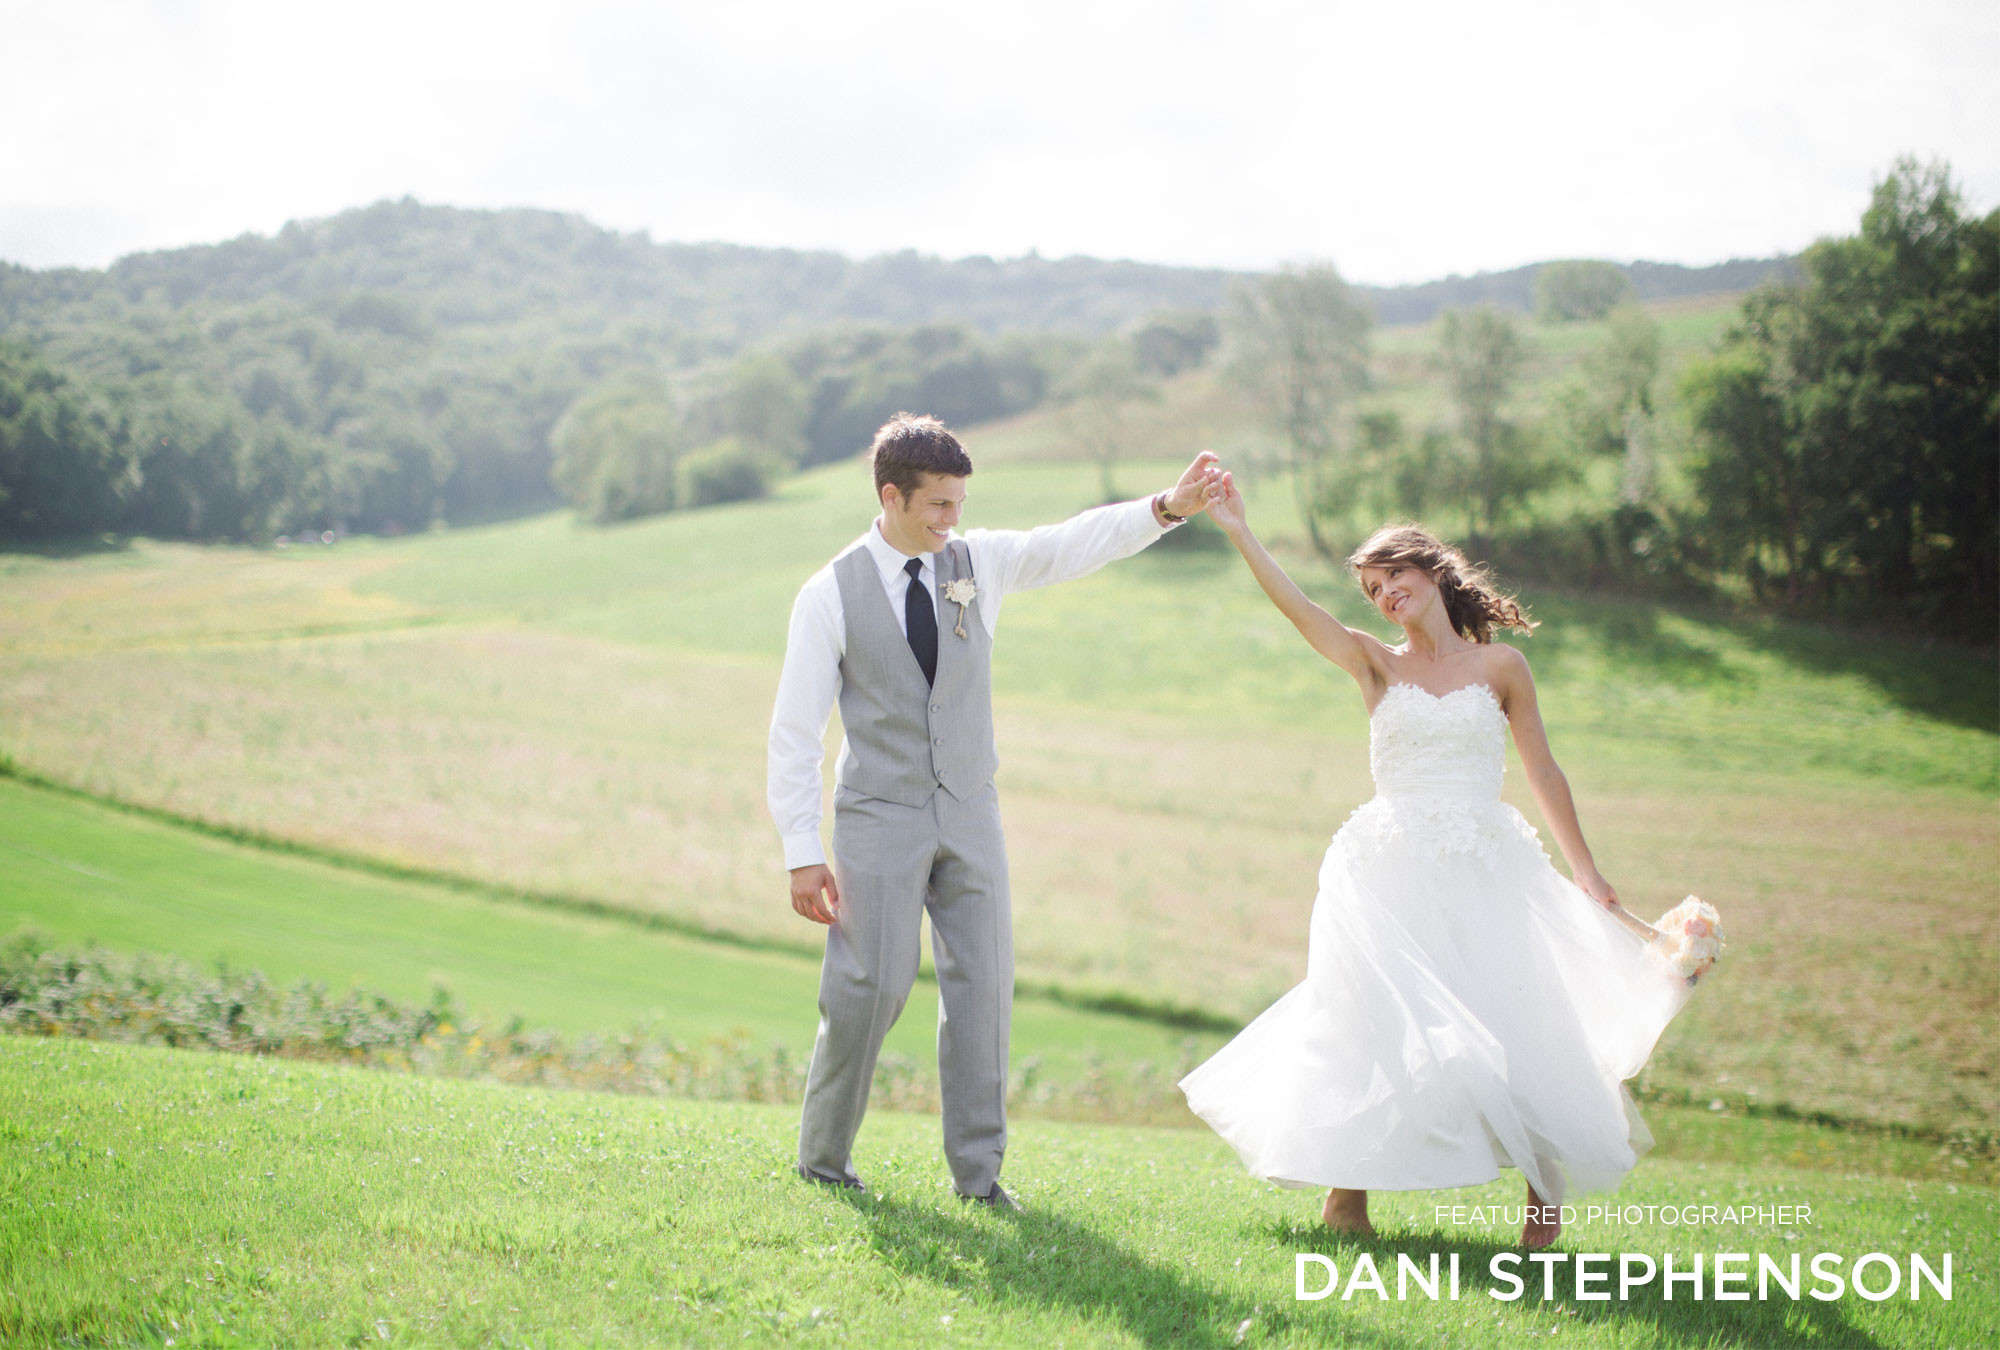 Dani Stephenson - Rustic Barn Weddings